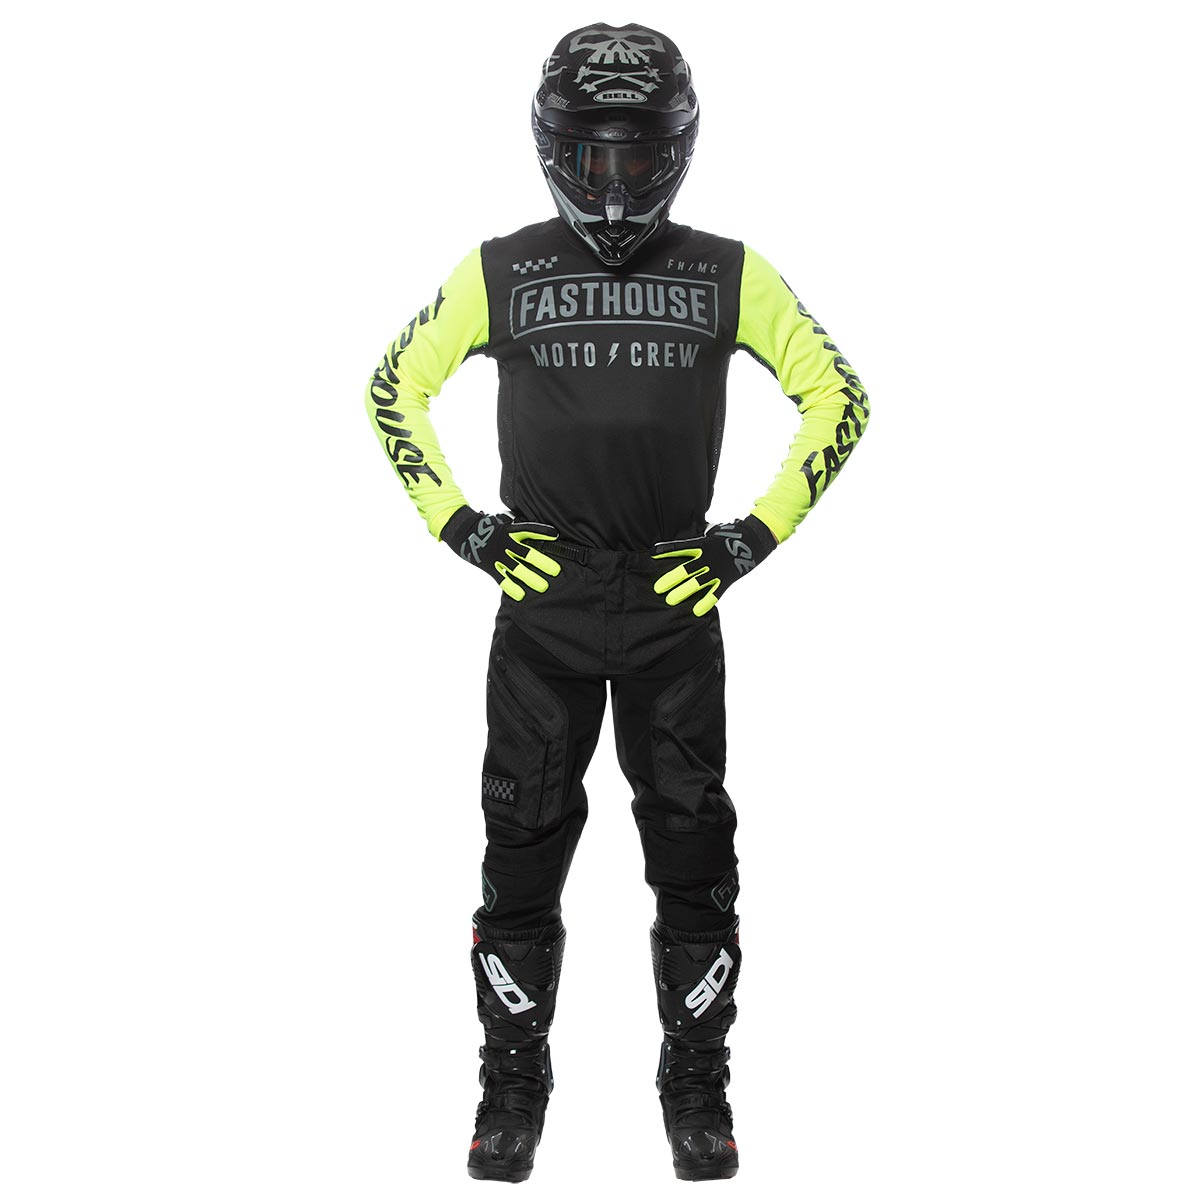 Strike Jersey - Black/Hi-Viz; Grindhouse Off-Road Pants